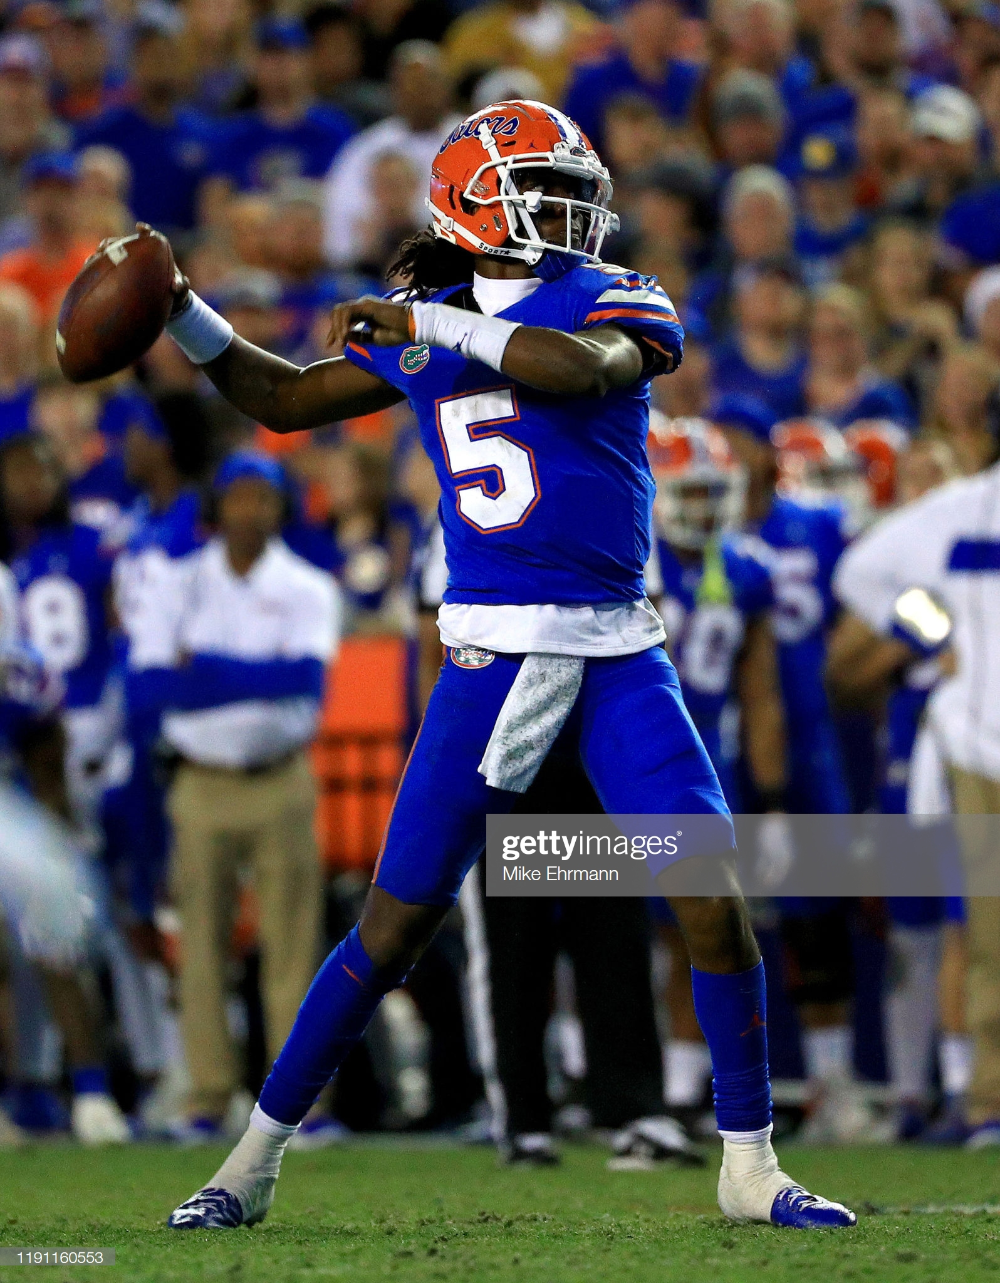 Emory Jones of the Florida Gators passes during a game